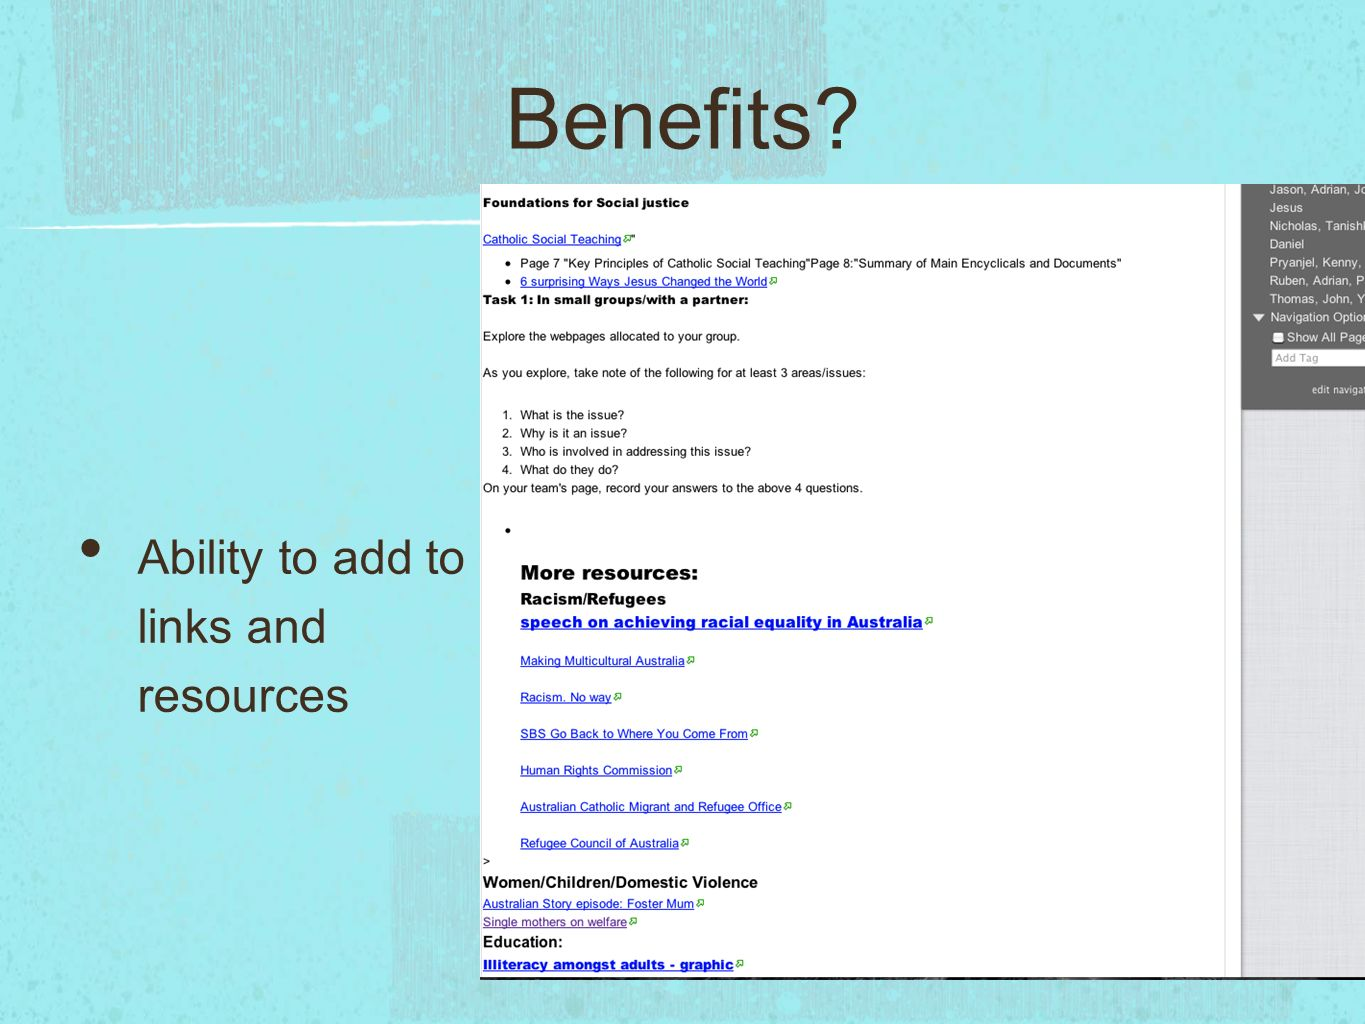 Benefits Ability to add to links and resources